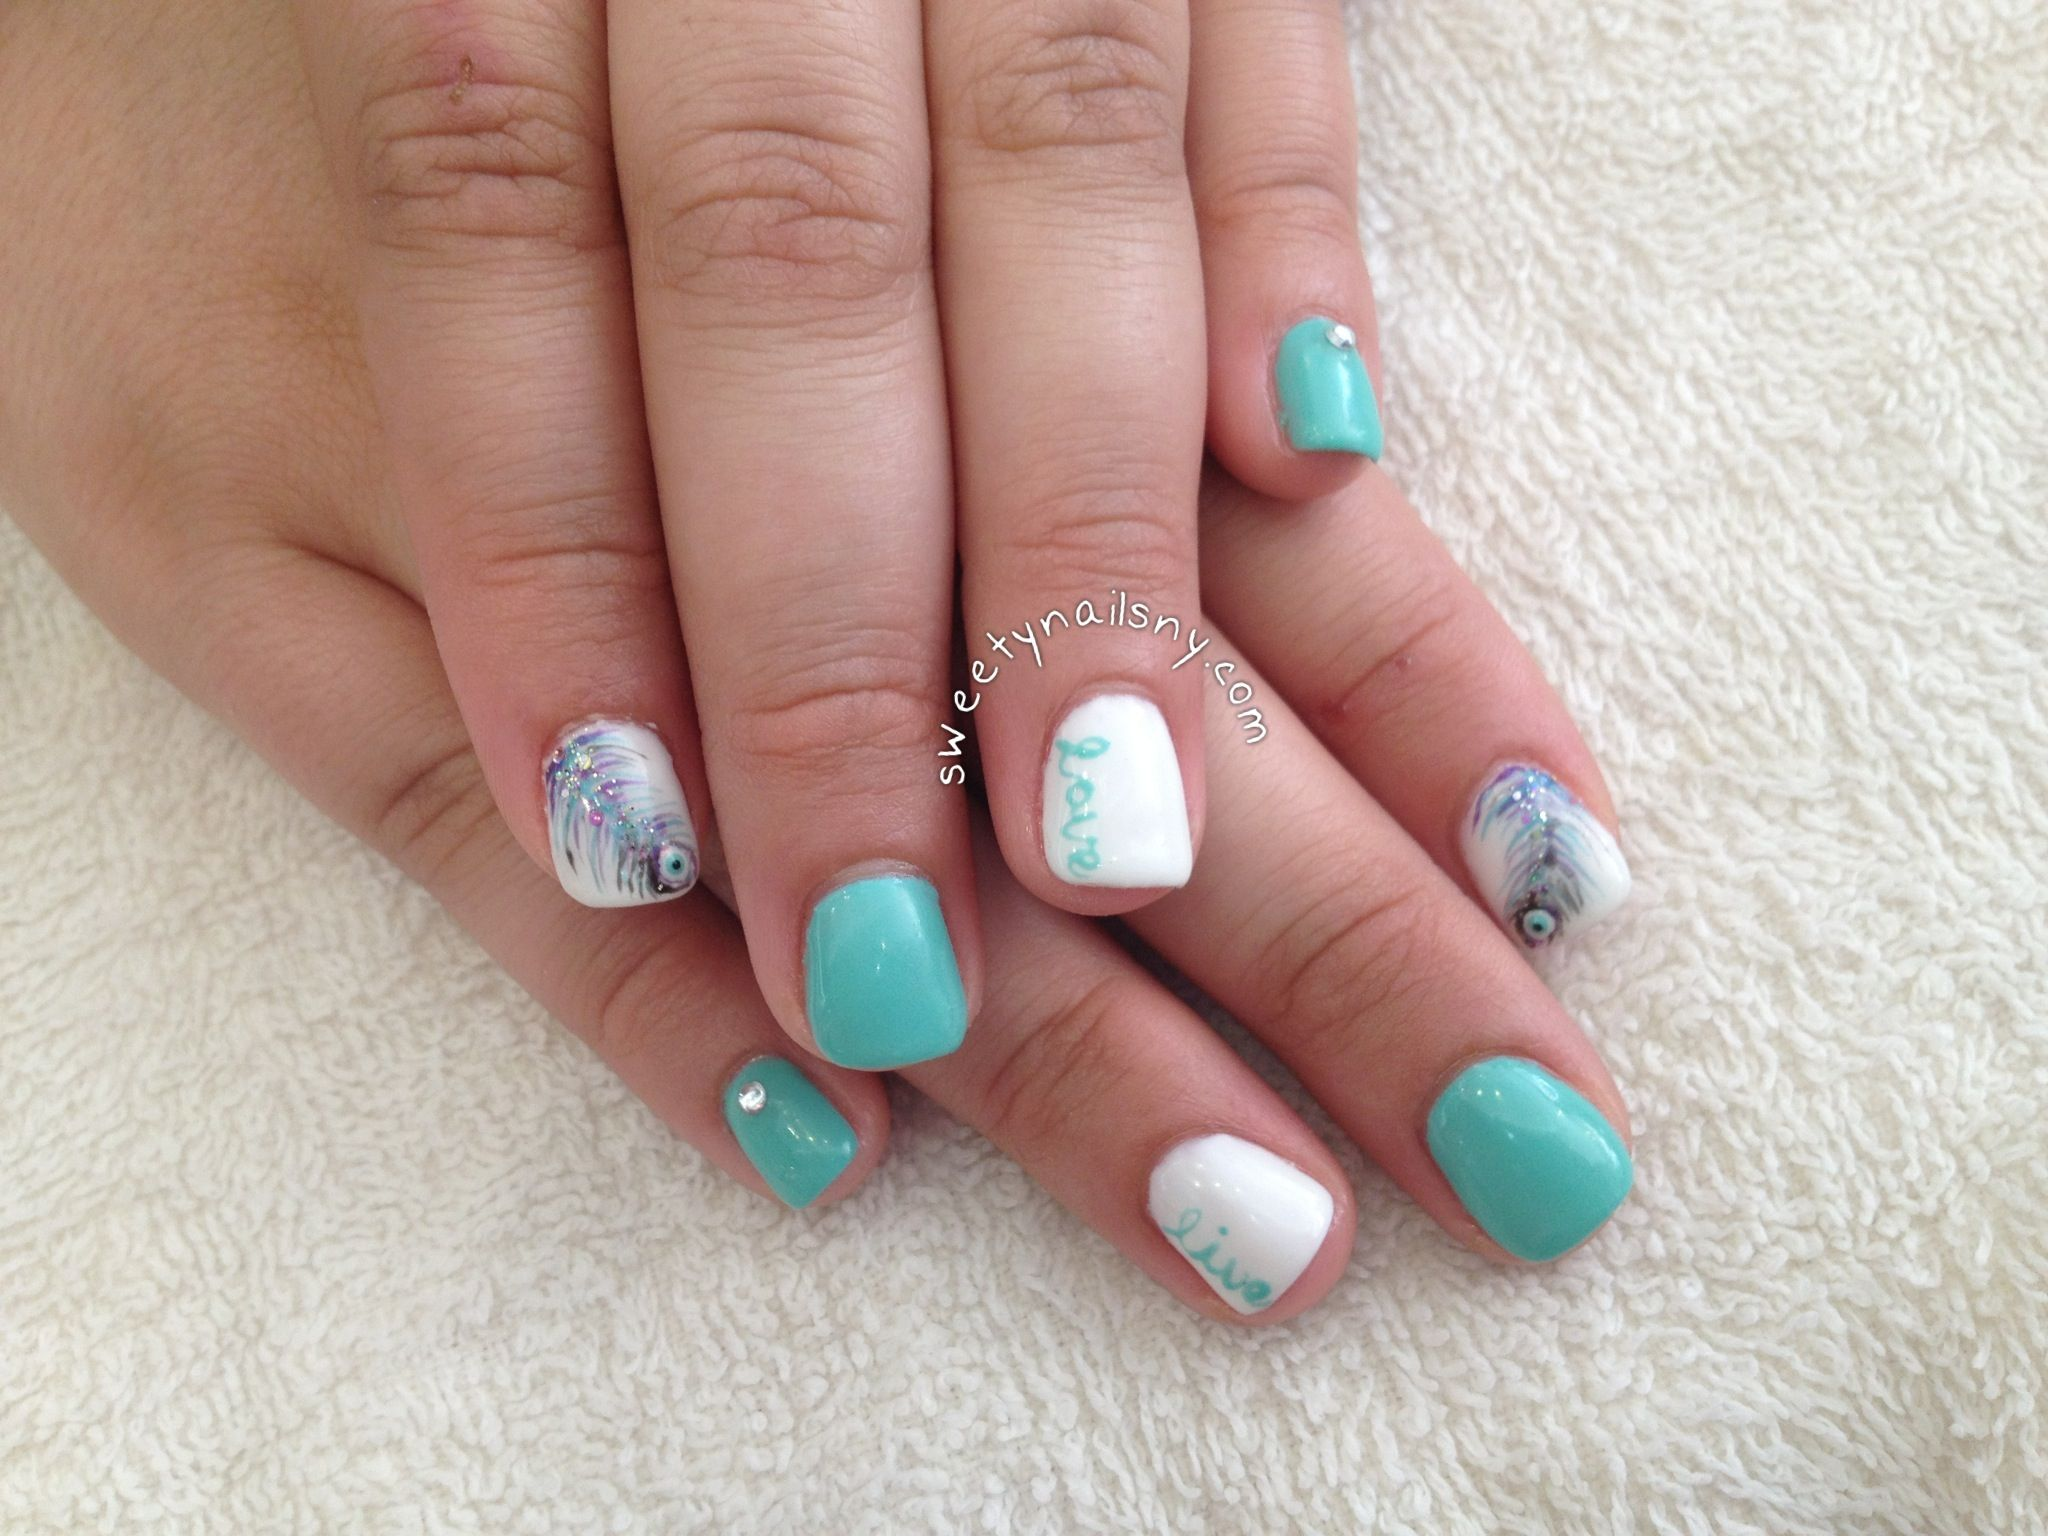 www.sweetynailsny.com Nail Design by Sunny | Nail Art Community Pins ...